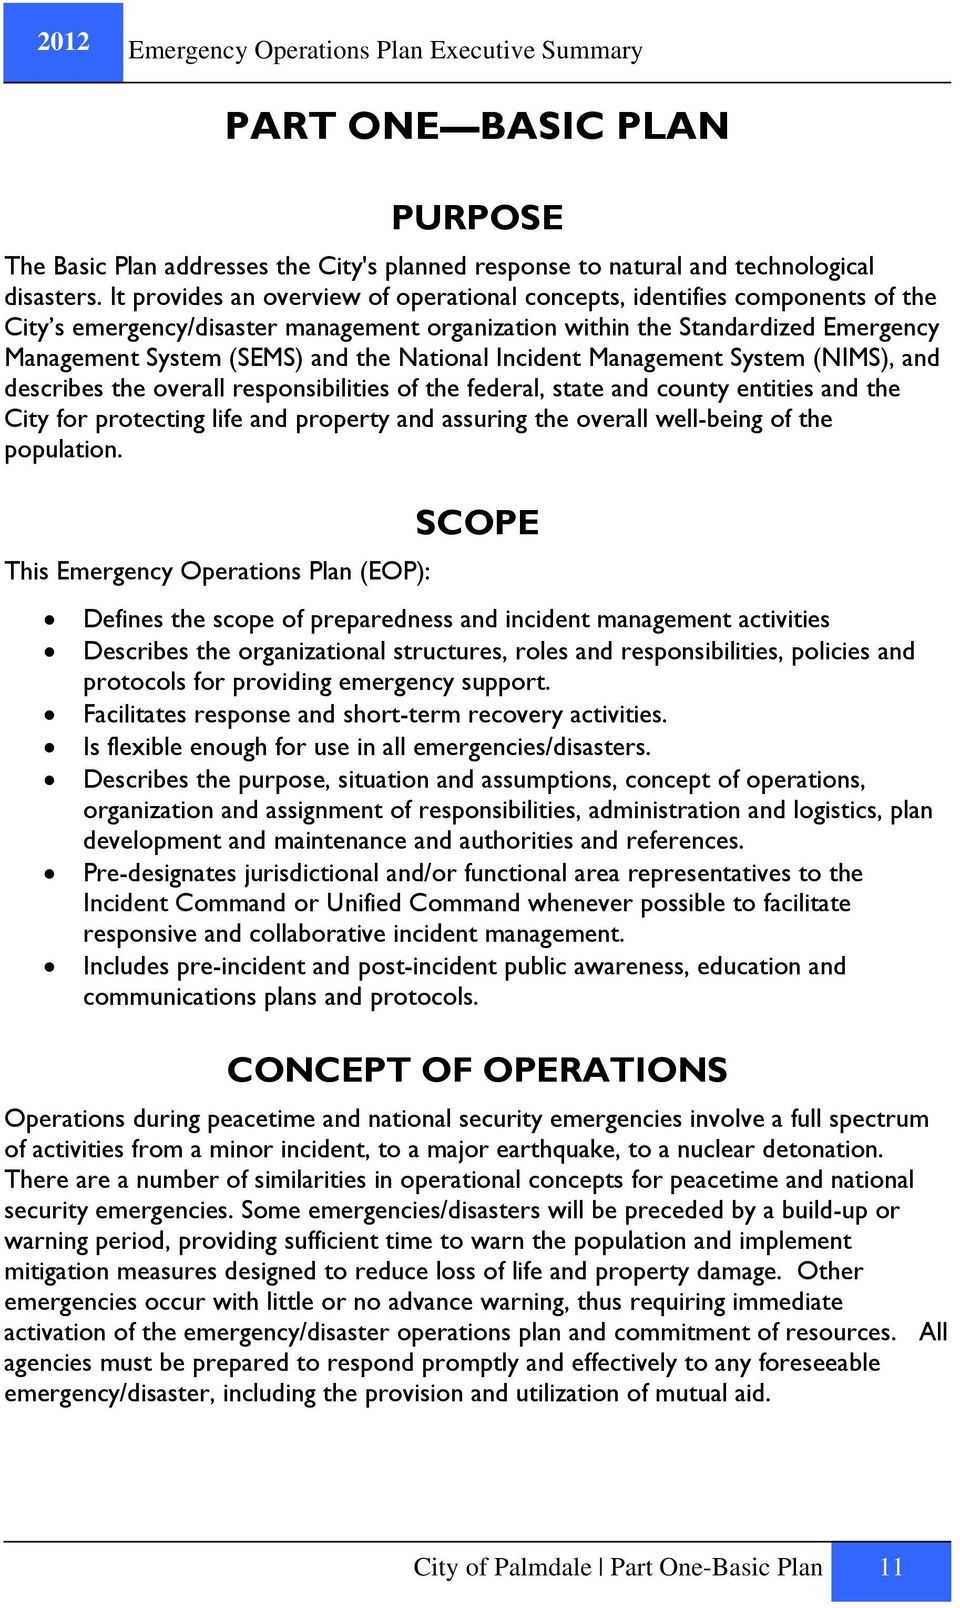 National Incident Management System (NIMS), and describes the overall responsibilities of the federal, state and county entities and the City for protecting life and property and assuring the overall